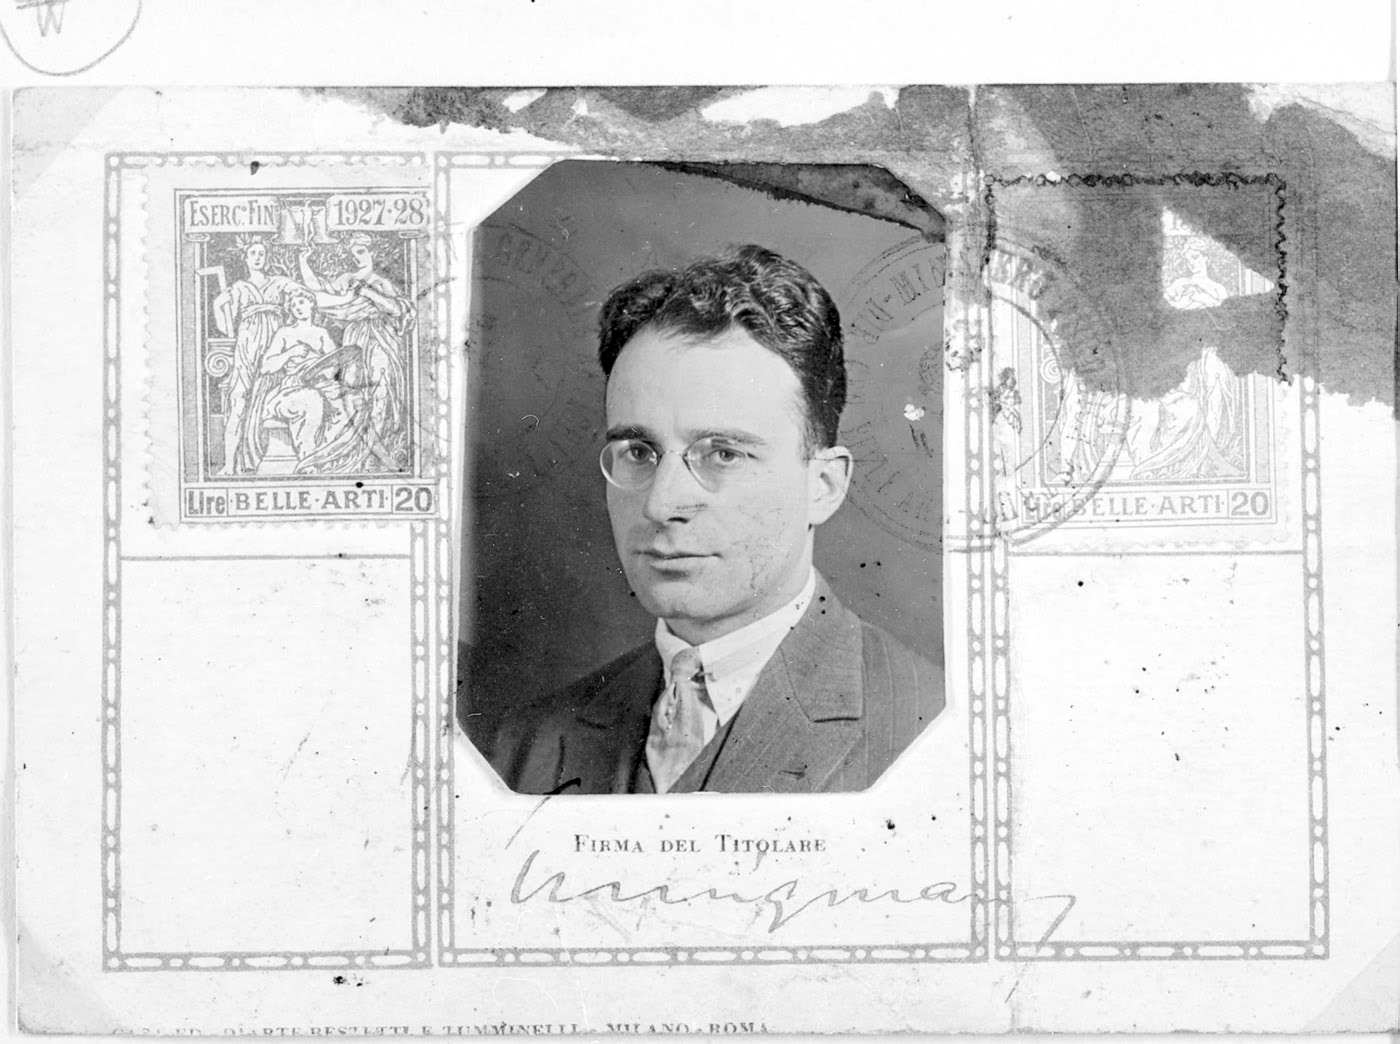 Kurt Seligmann, pictured in an Italian museum passport, 1927